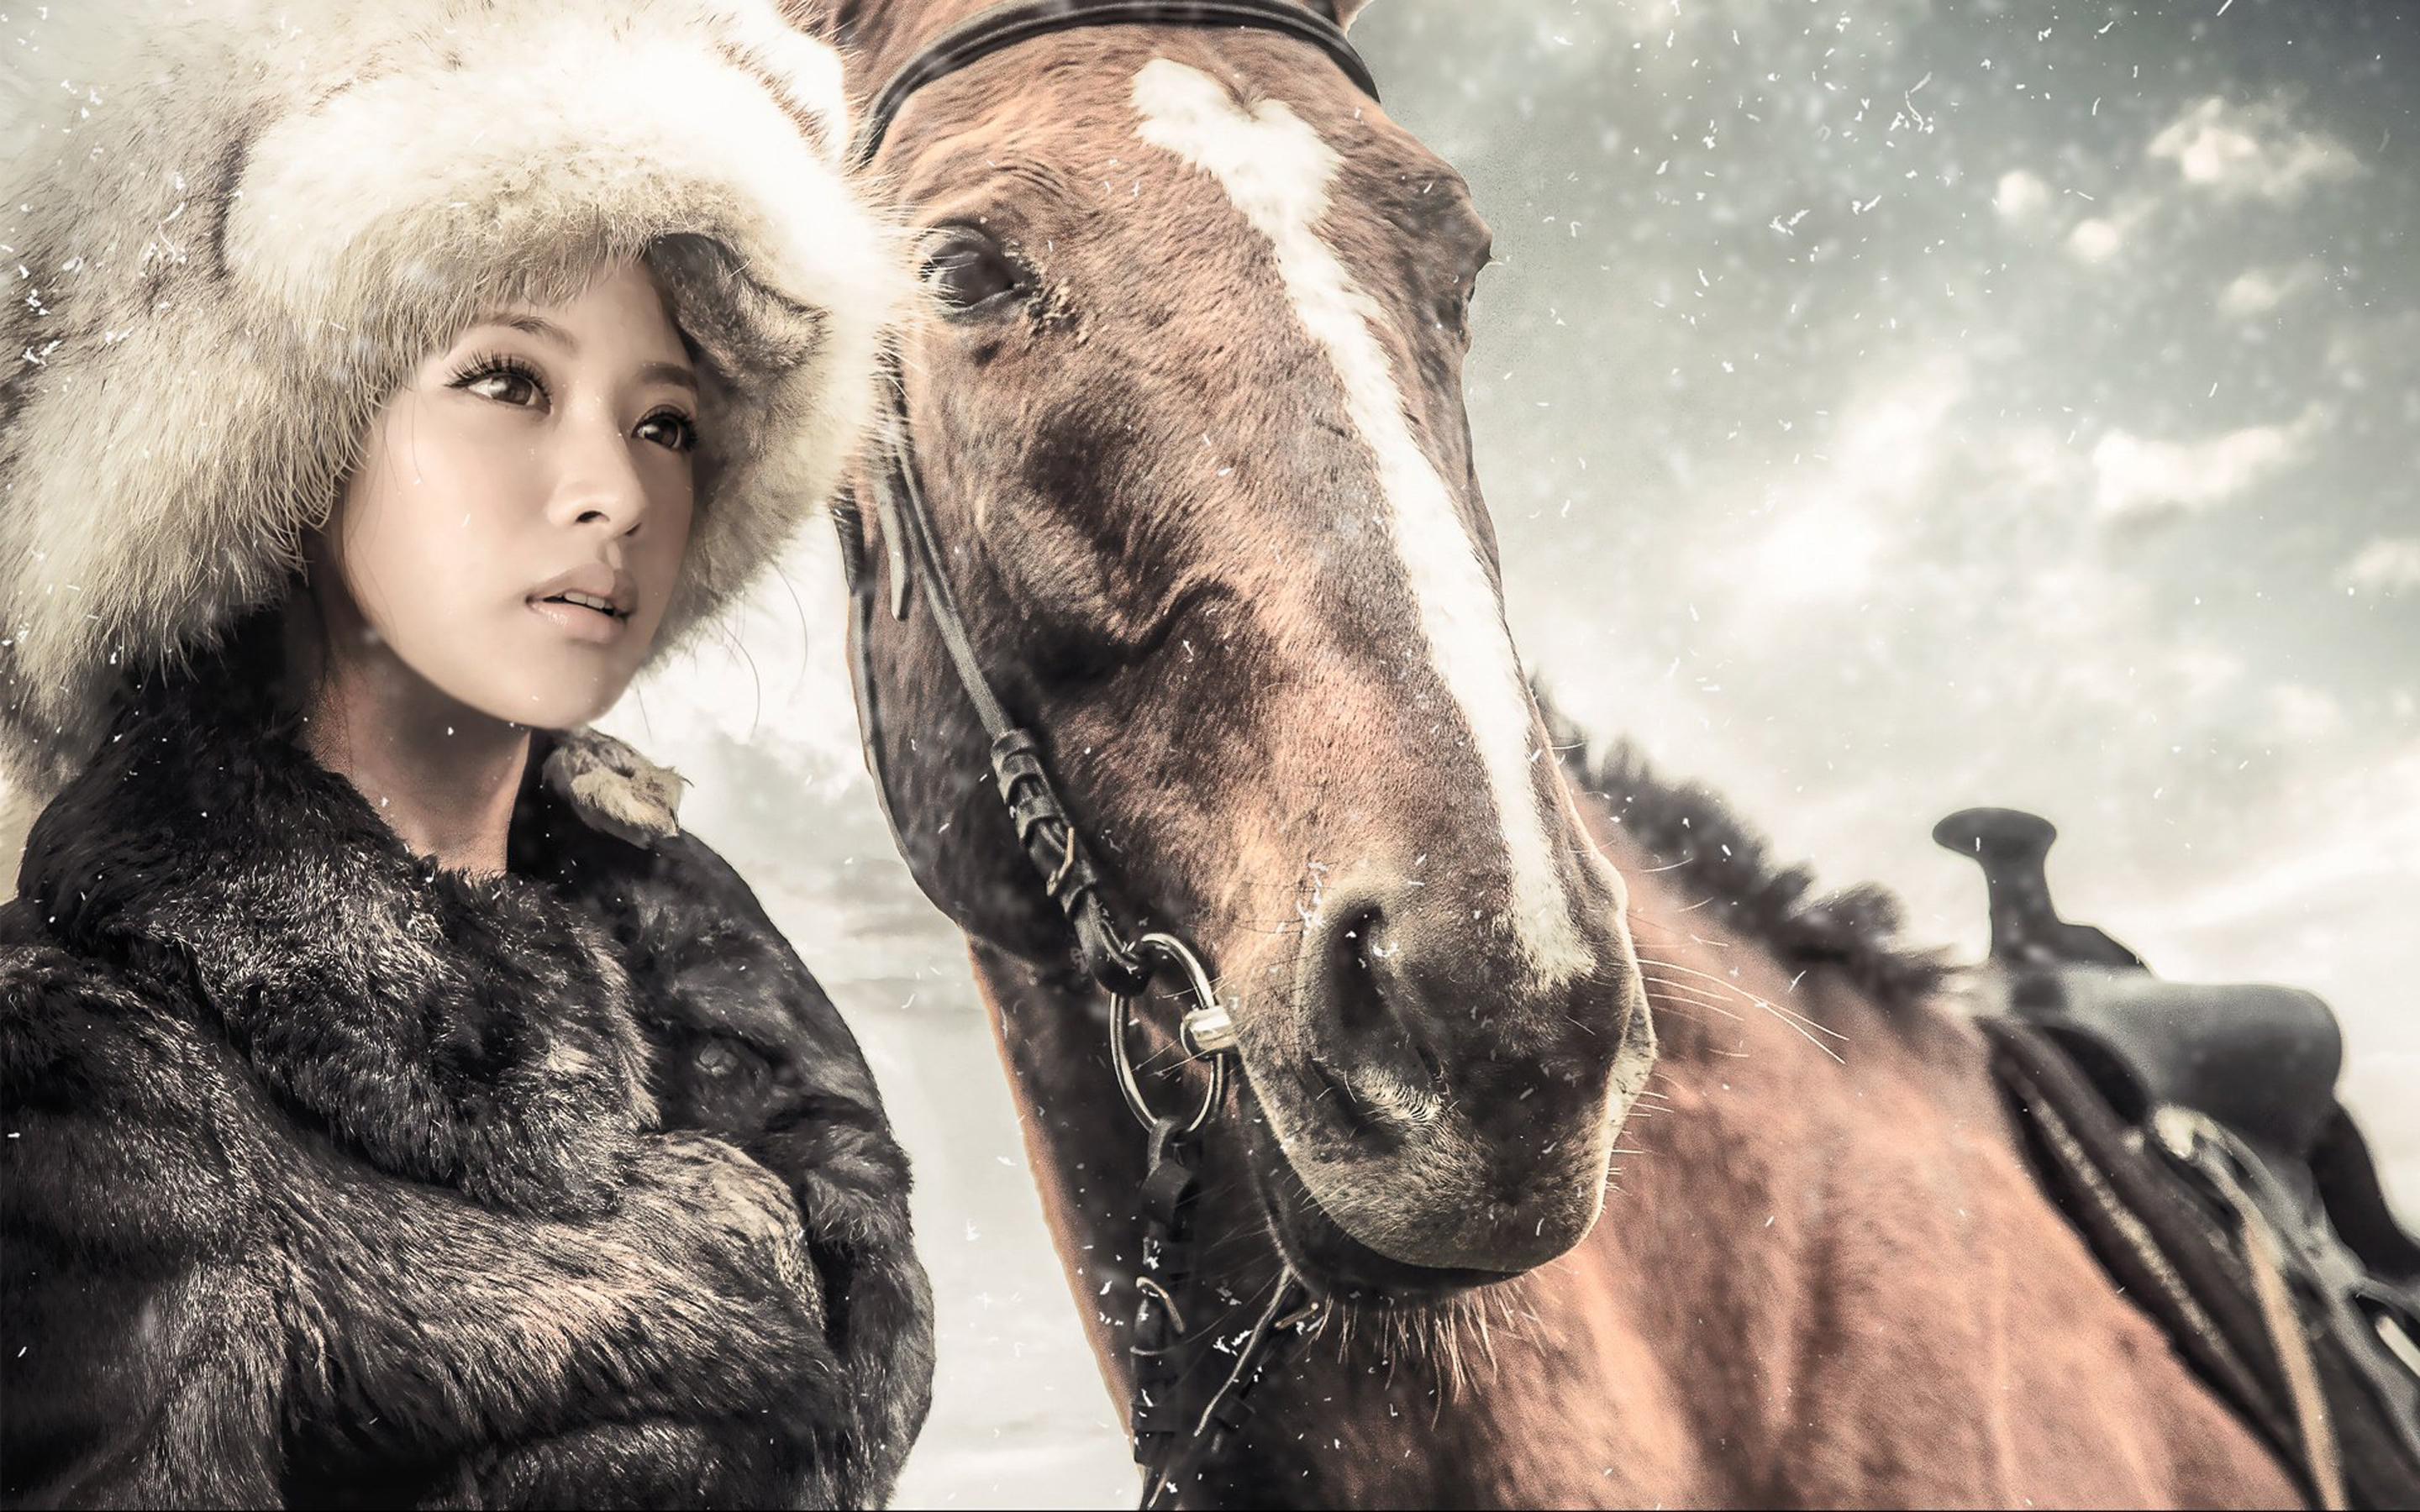 Cute Lock Screen Wallpapers For Iphone Girl And Horse Winter Snow Coat And Hat Of Fur Full Hd